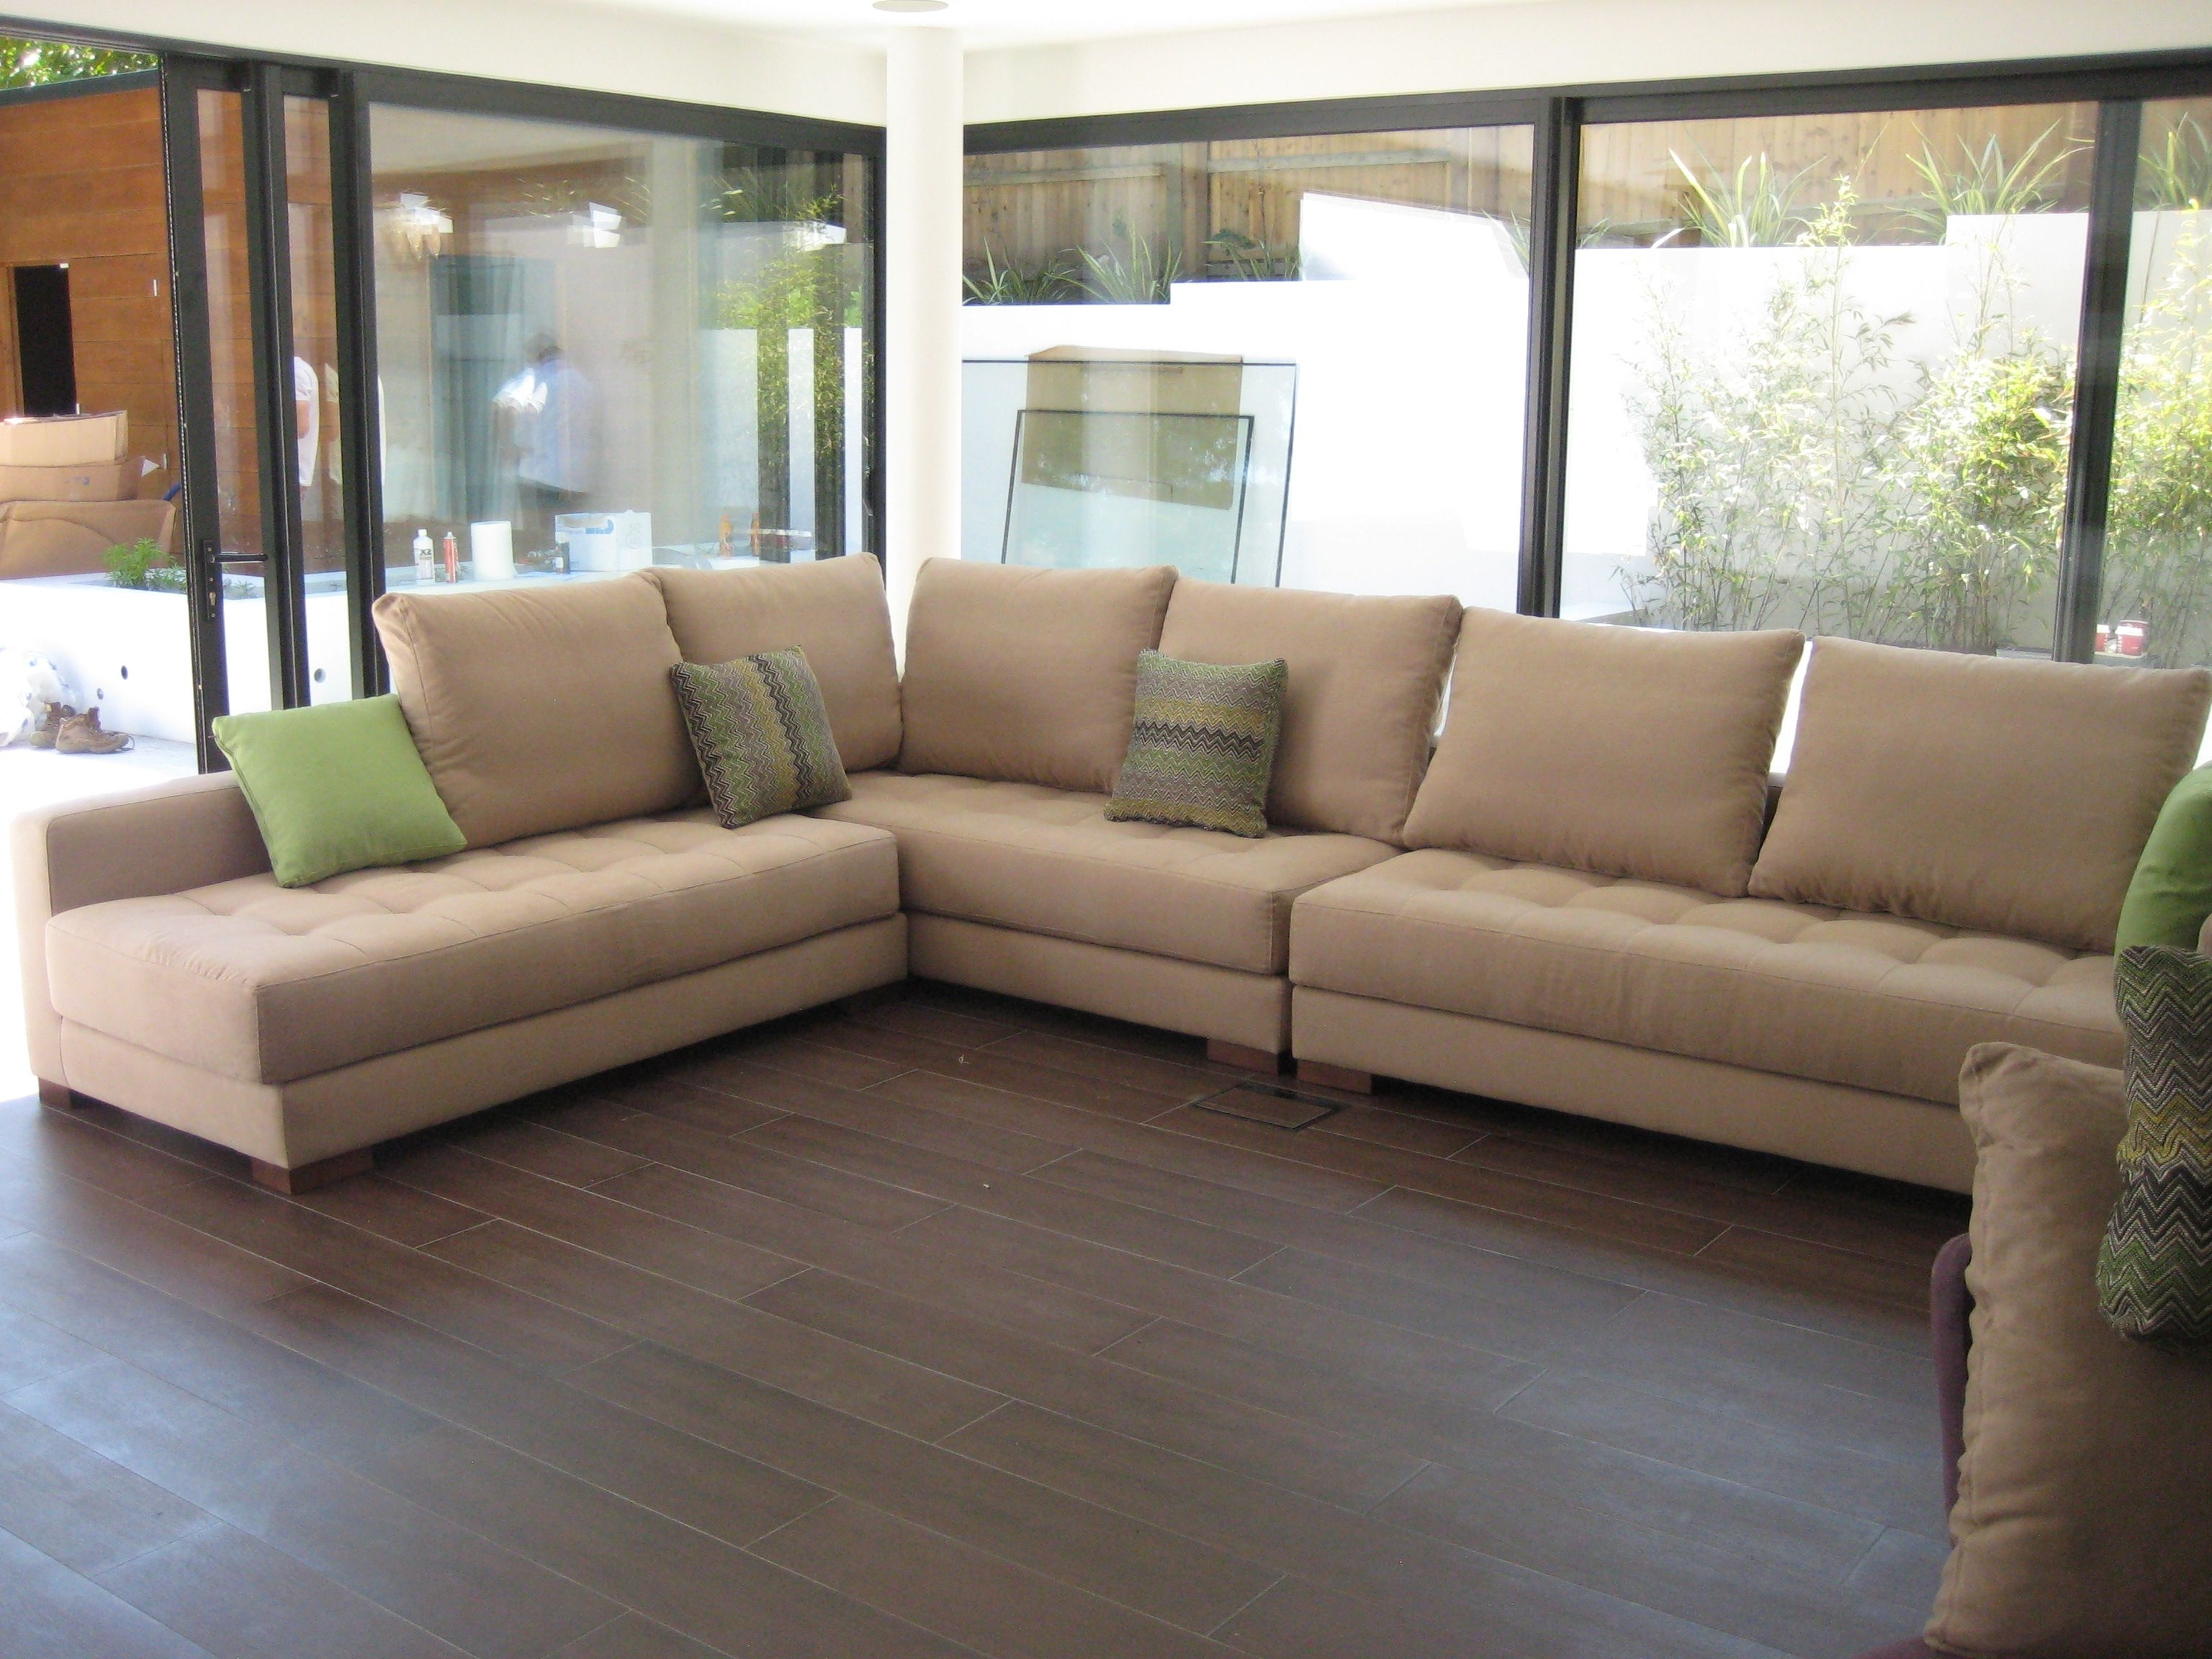 Newest Used Sectional Sofas With Regard To Yecla Sectional Sofa Modules – In Romo Linara Fabrics (View 11 of 15)